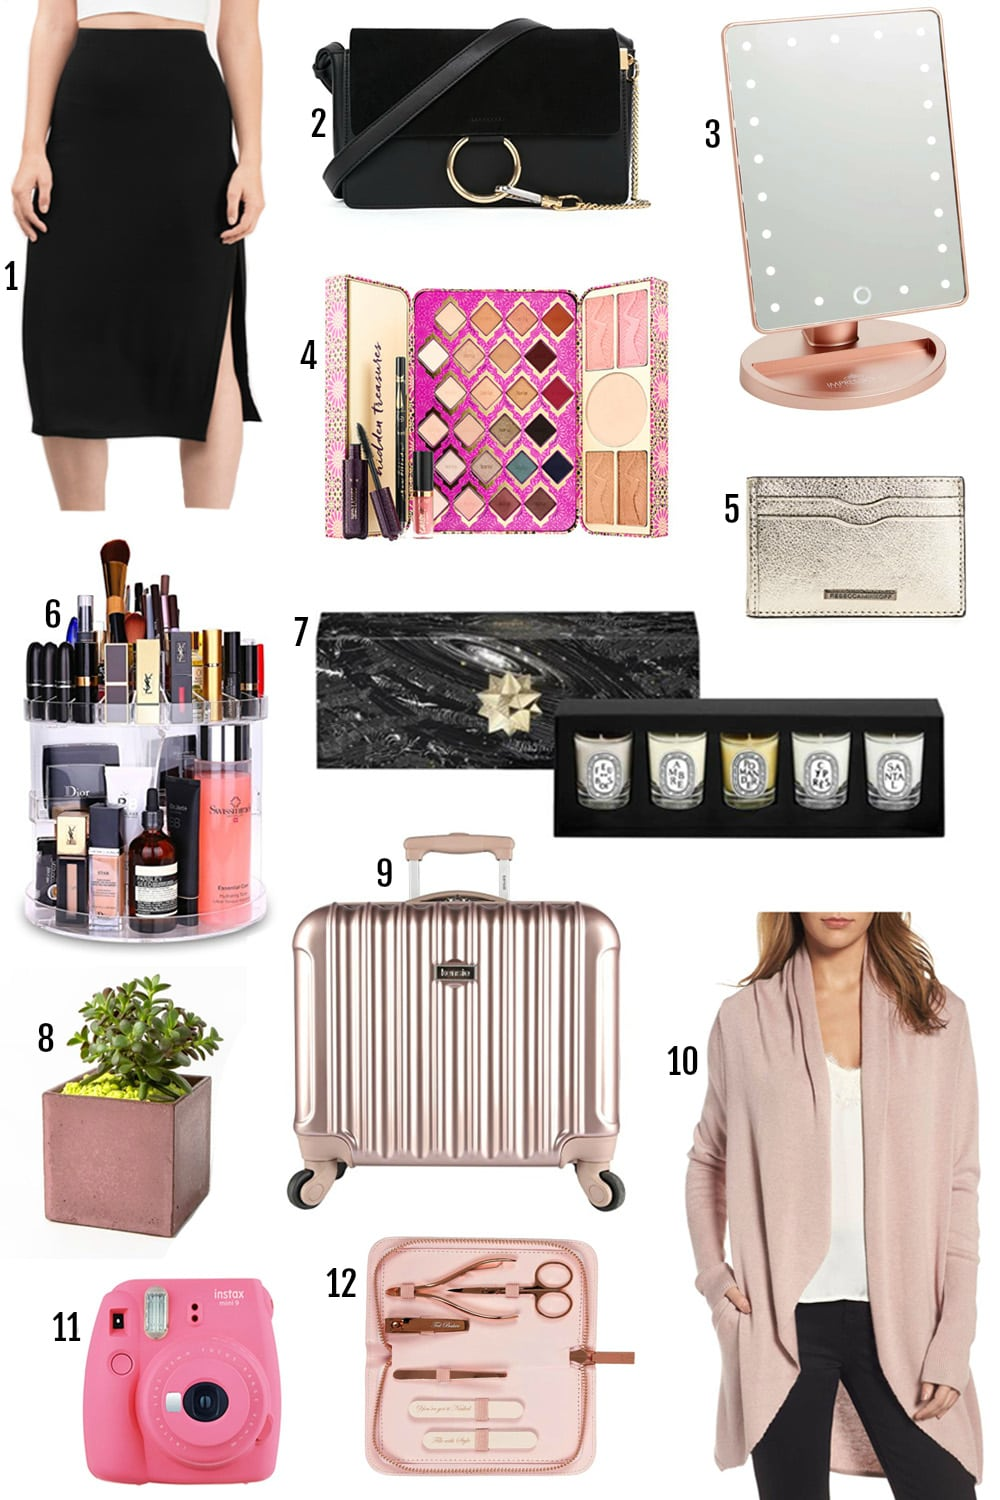 gifts for teenage girls | gifts for mom | polaroid camera, pink luggage, pink vanity mirror, acrylic makeup organizer | gifts for girls that love the Kardashians | gifts that ship in 2 days | Amazon